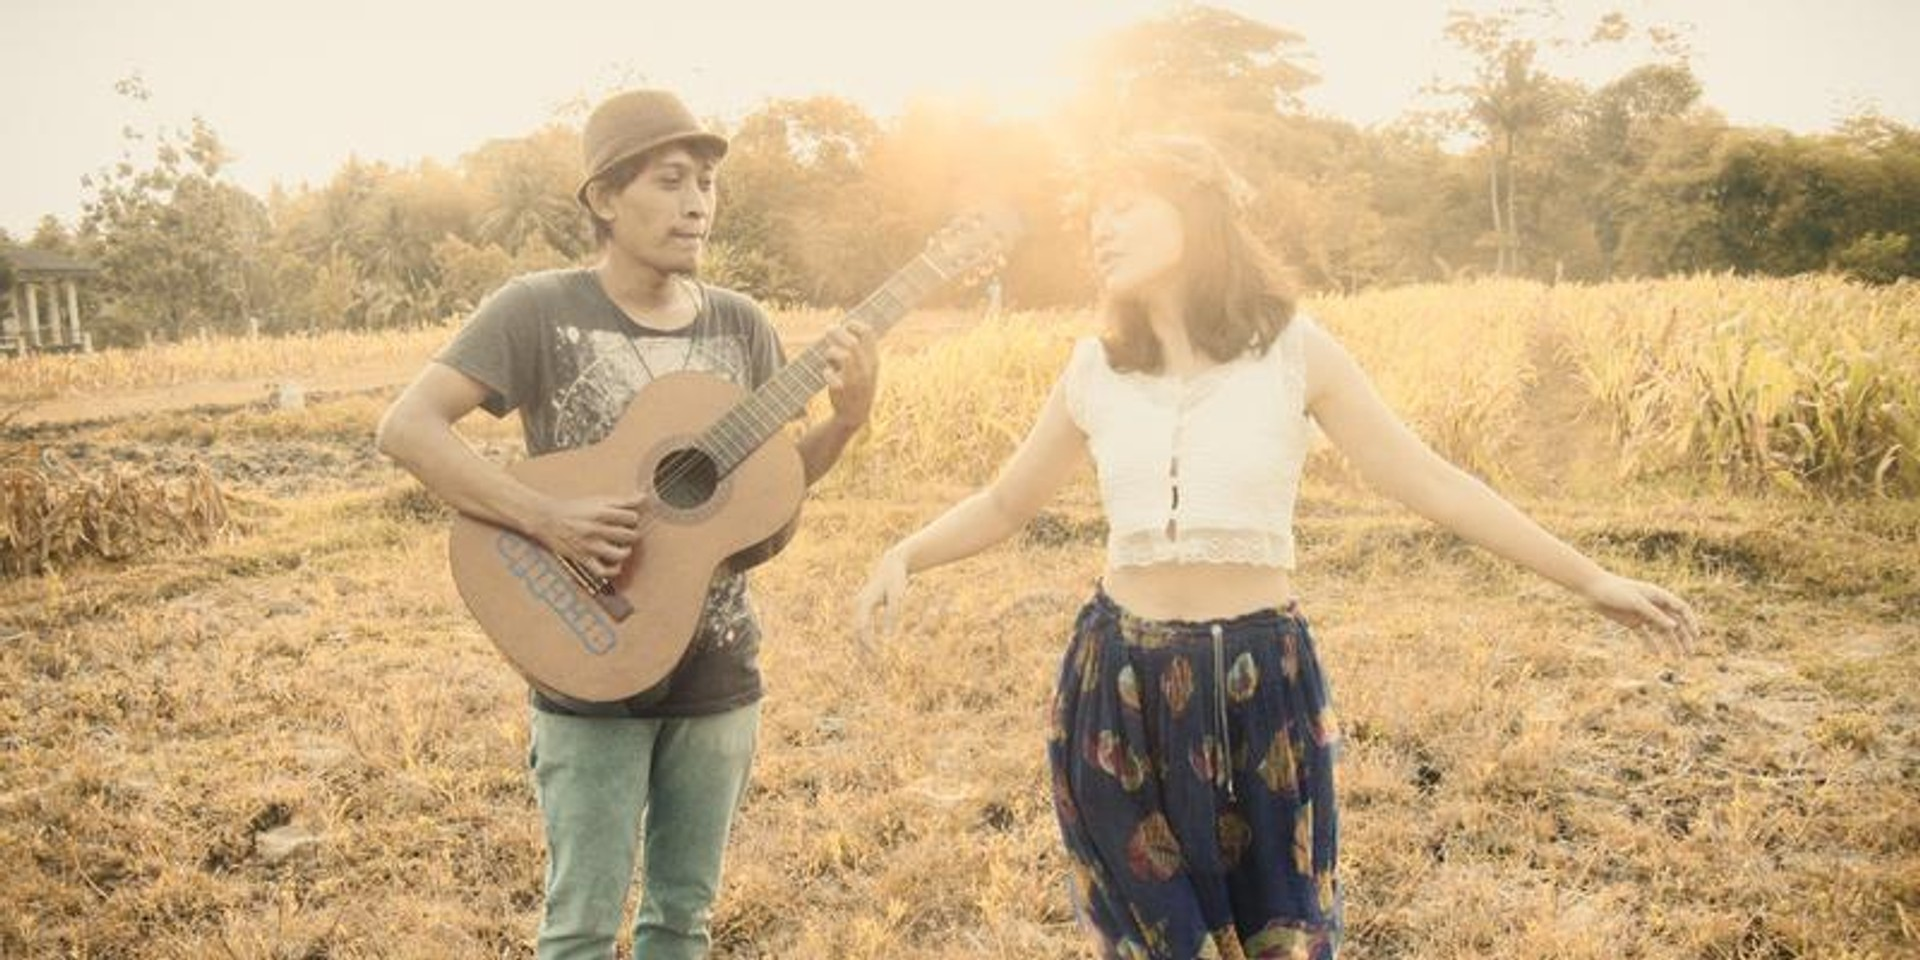 Stars and Rabbit release their latest music video 'Man Upon The Hill' — watch